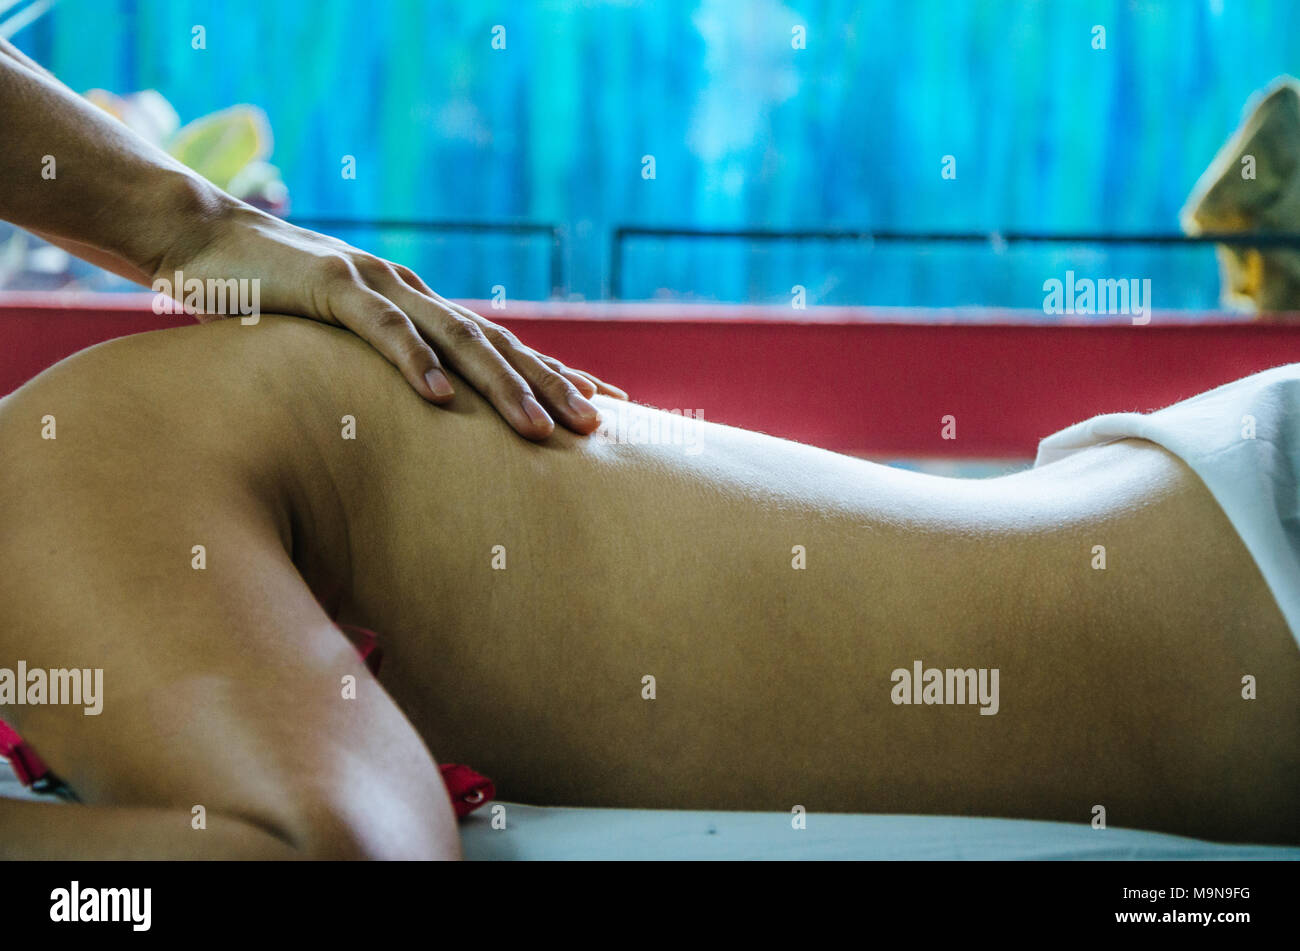 Cosmiatra doing relaxing massages to a patient Stock Photo